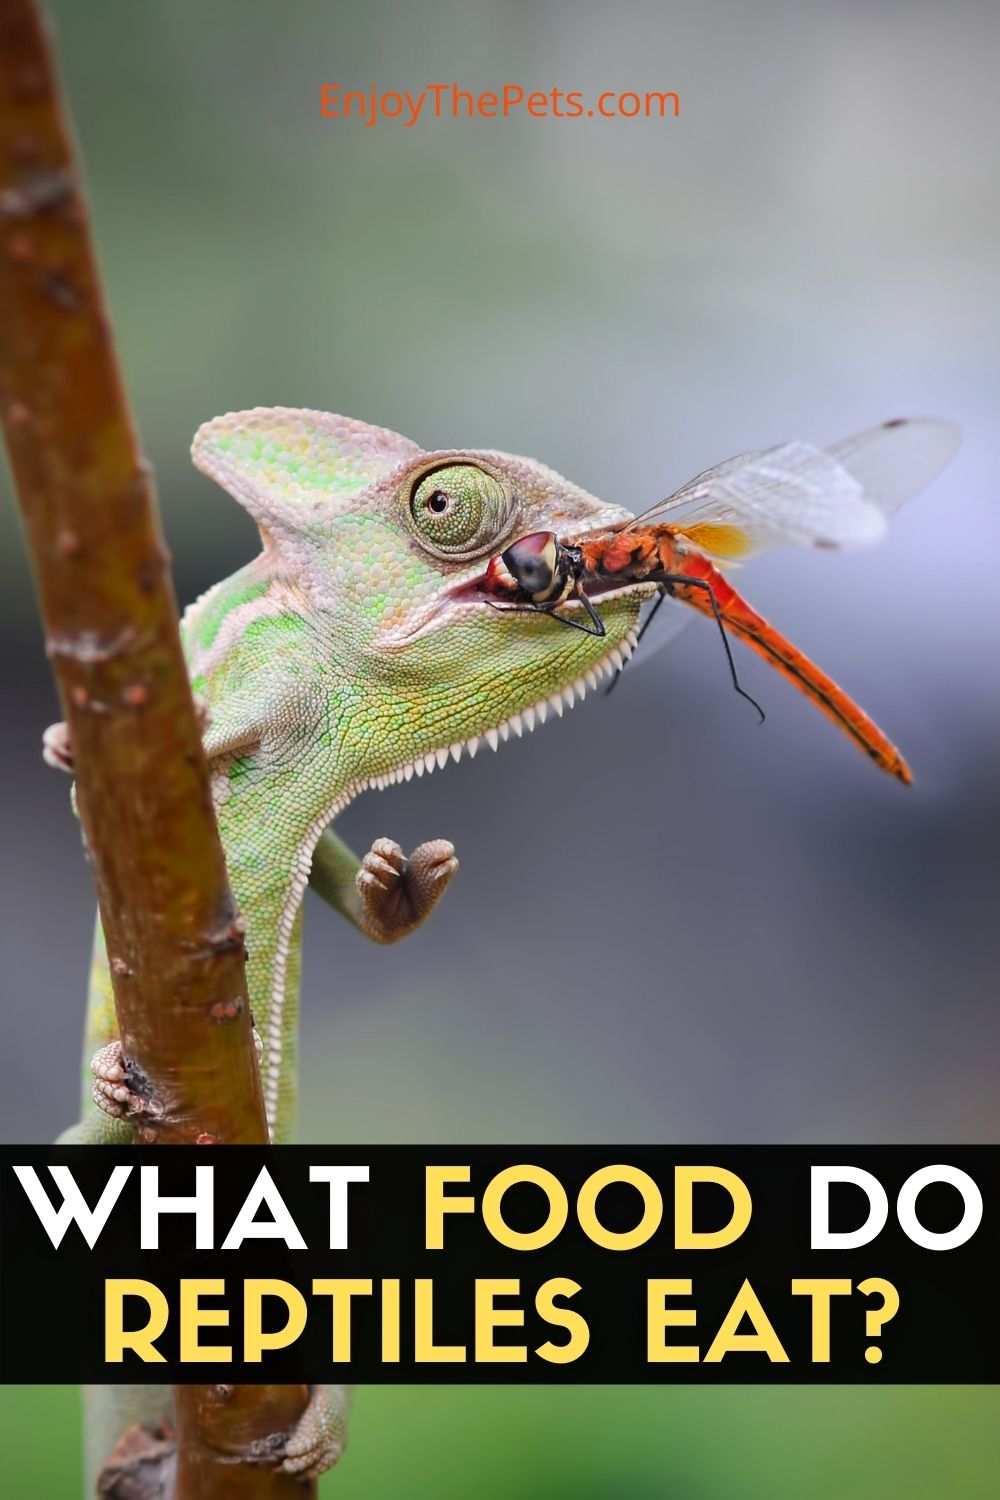 WHAT FOOD DO REPTILES EAT?